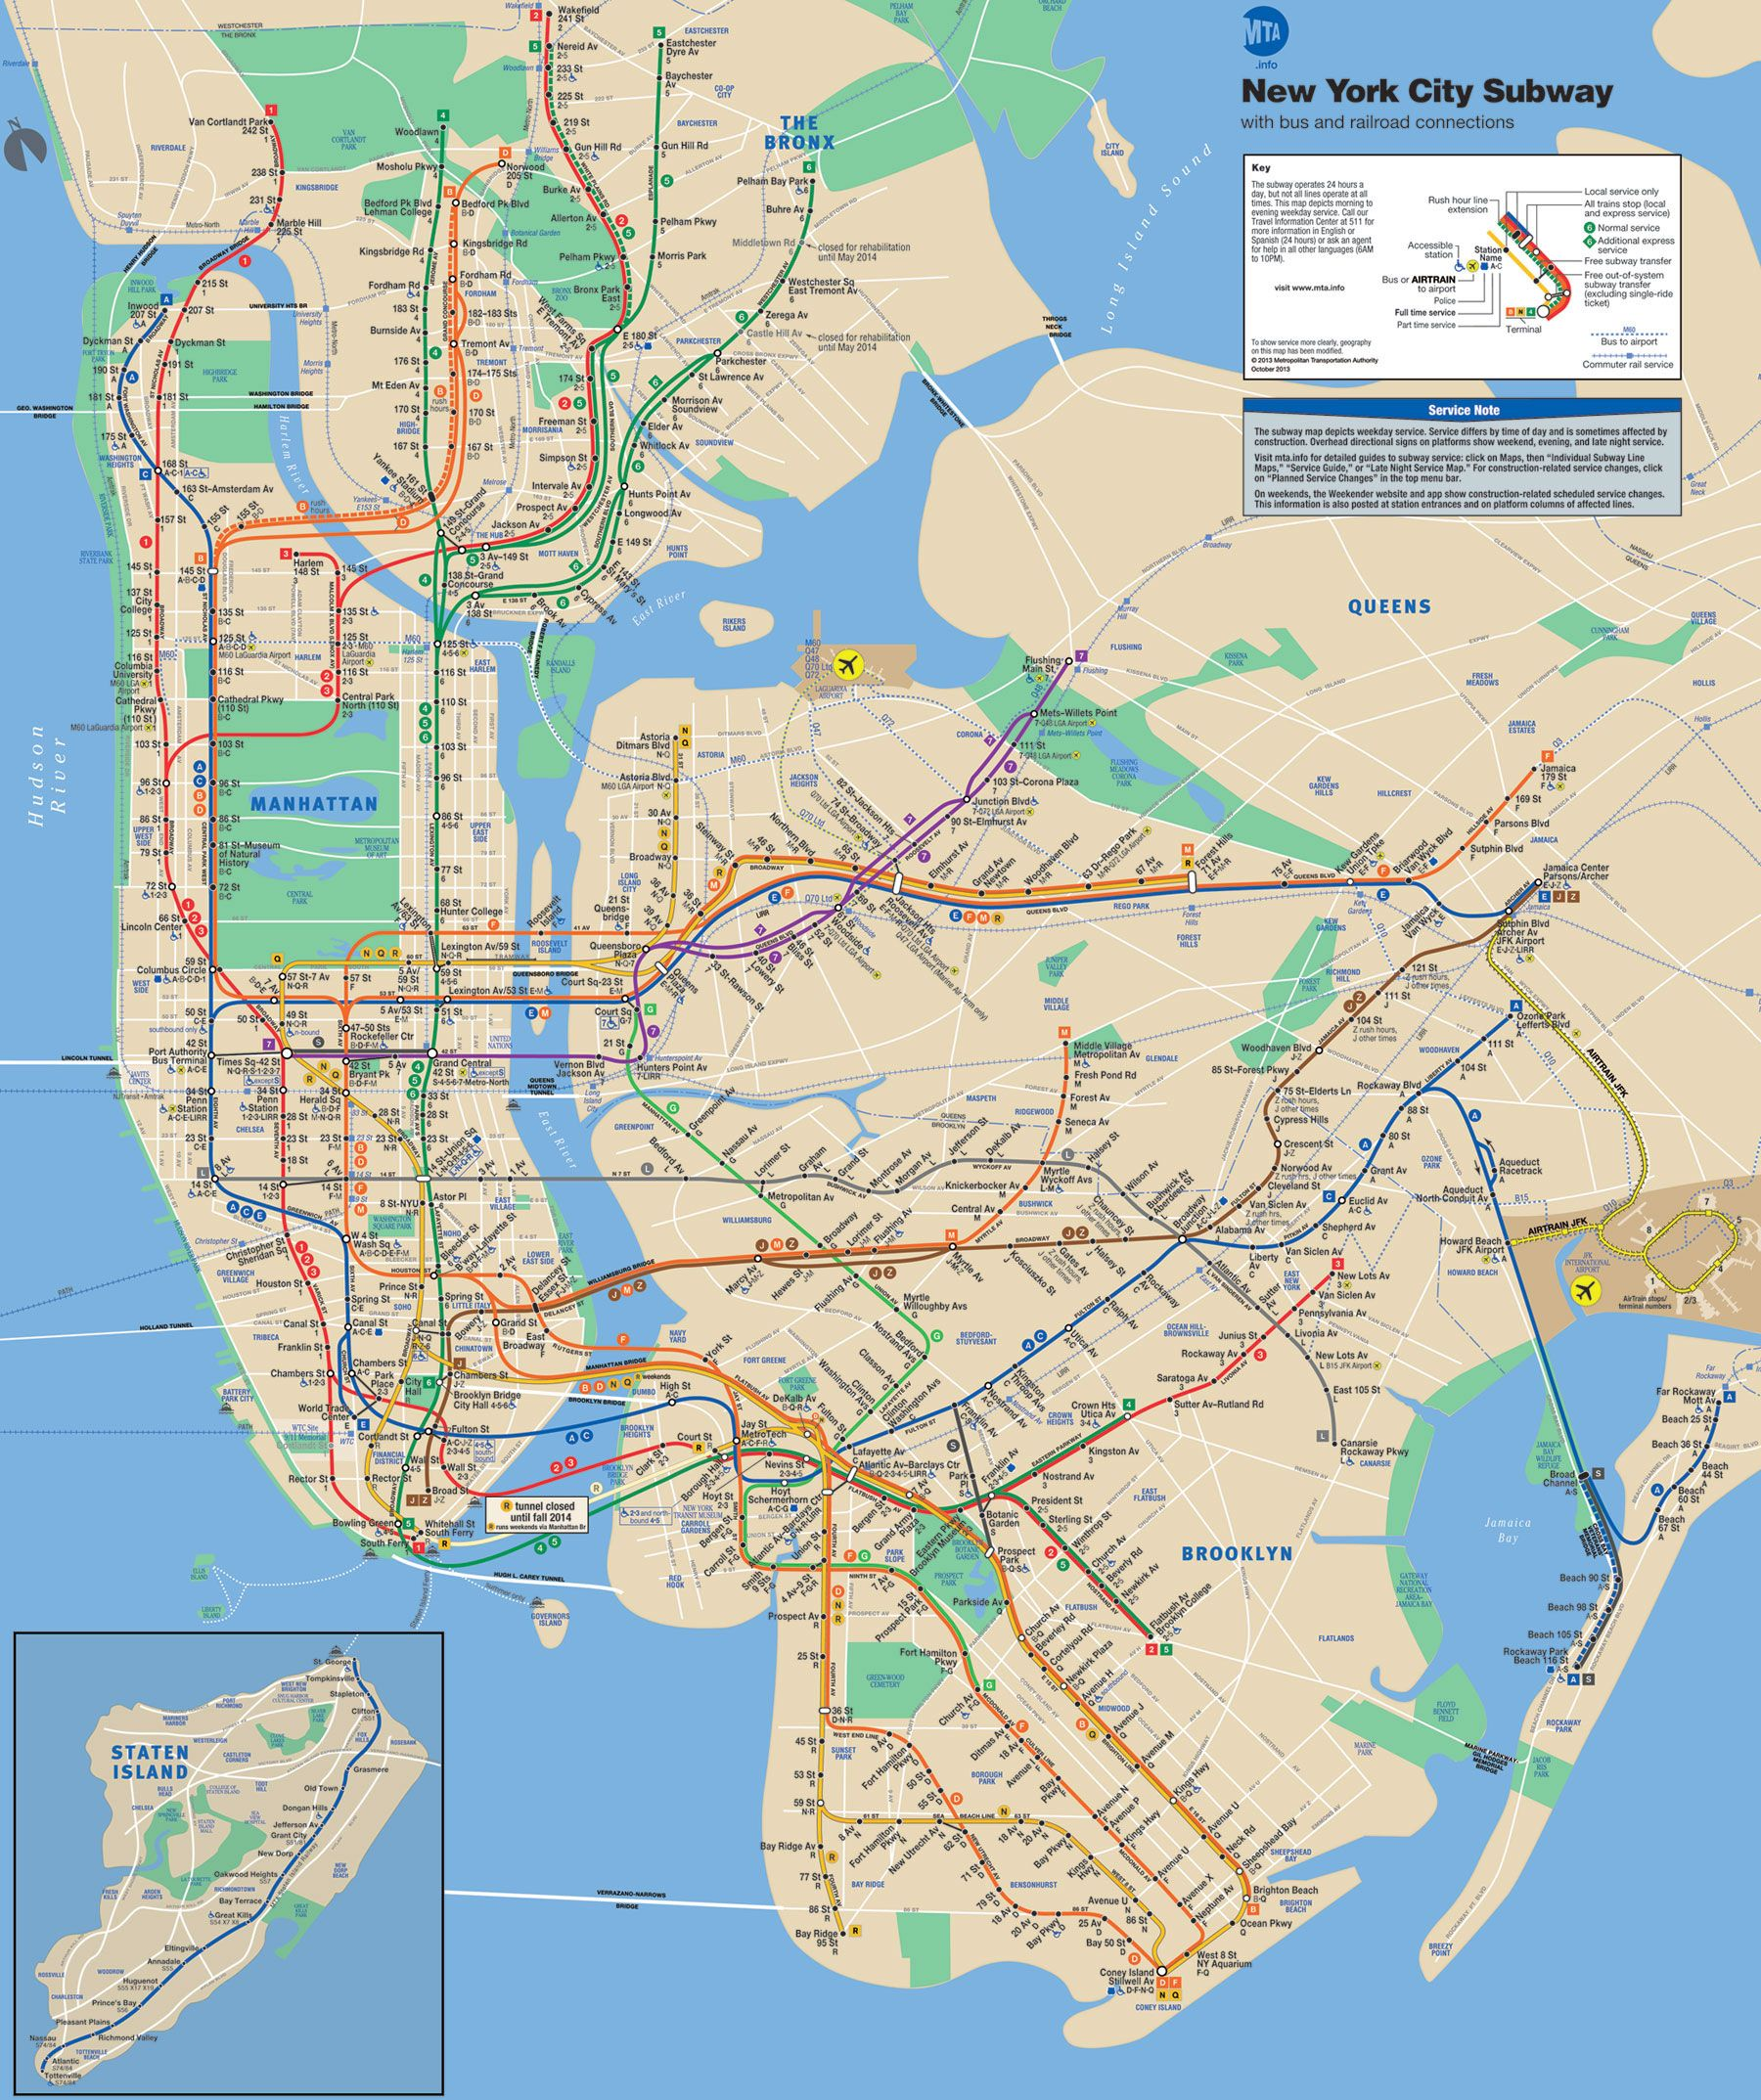 nyc subway · always gotta know how to get from point a to point b  mtasubway map. always gotta know how to get from point a to point b  mta subway